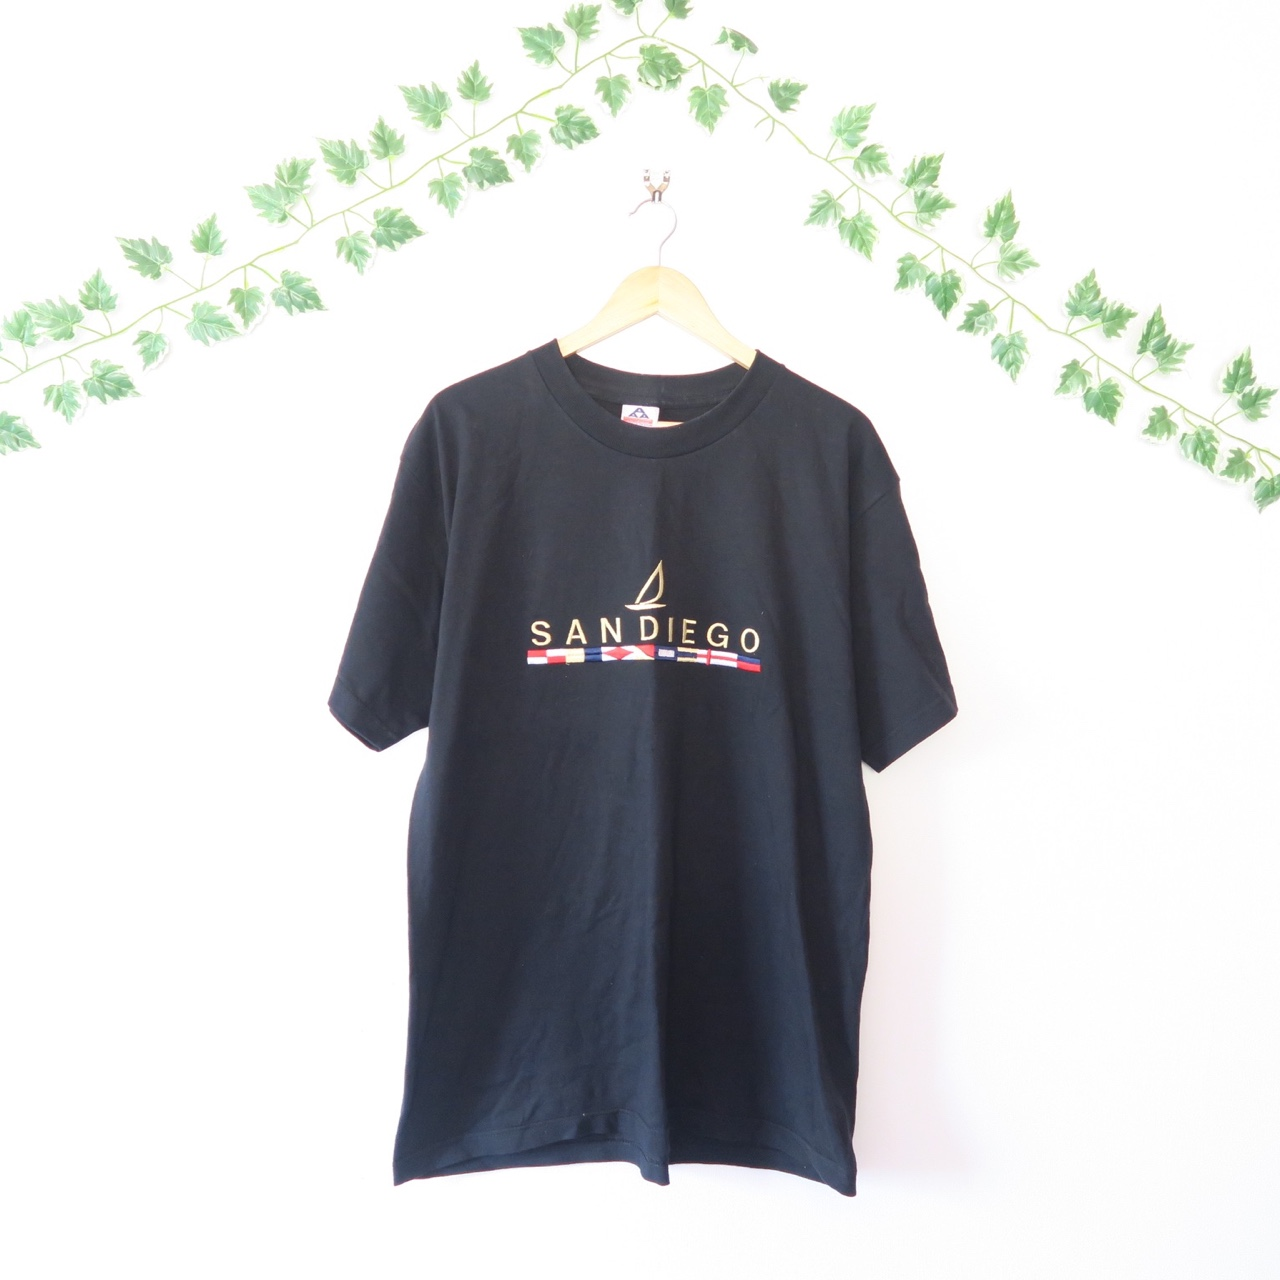 Black 90s T Shirt With Embroidered 39 San Diego 39 Across The